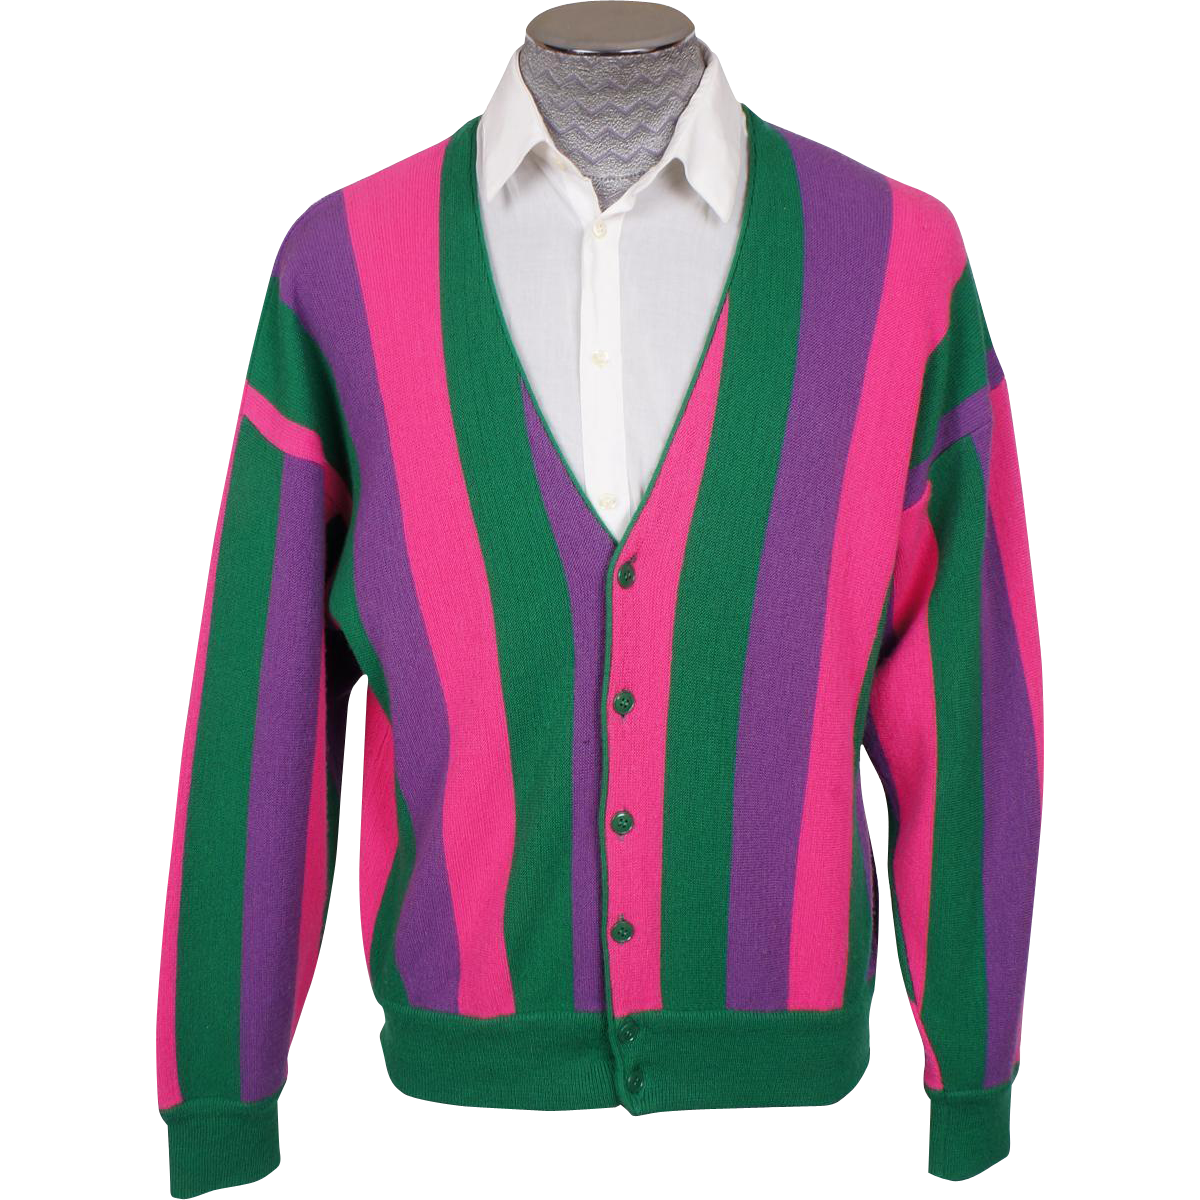 Vintage Mens Cardigan Sweater Made in Italy 1960s Bright Stripes ...